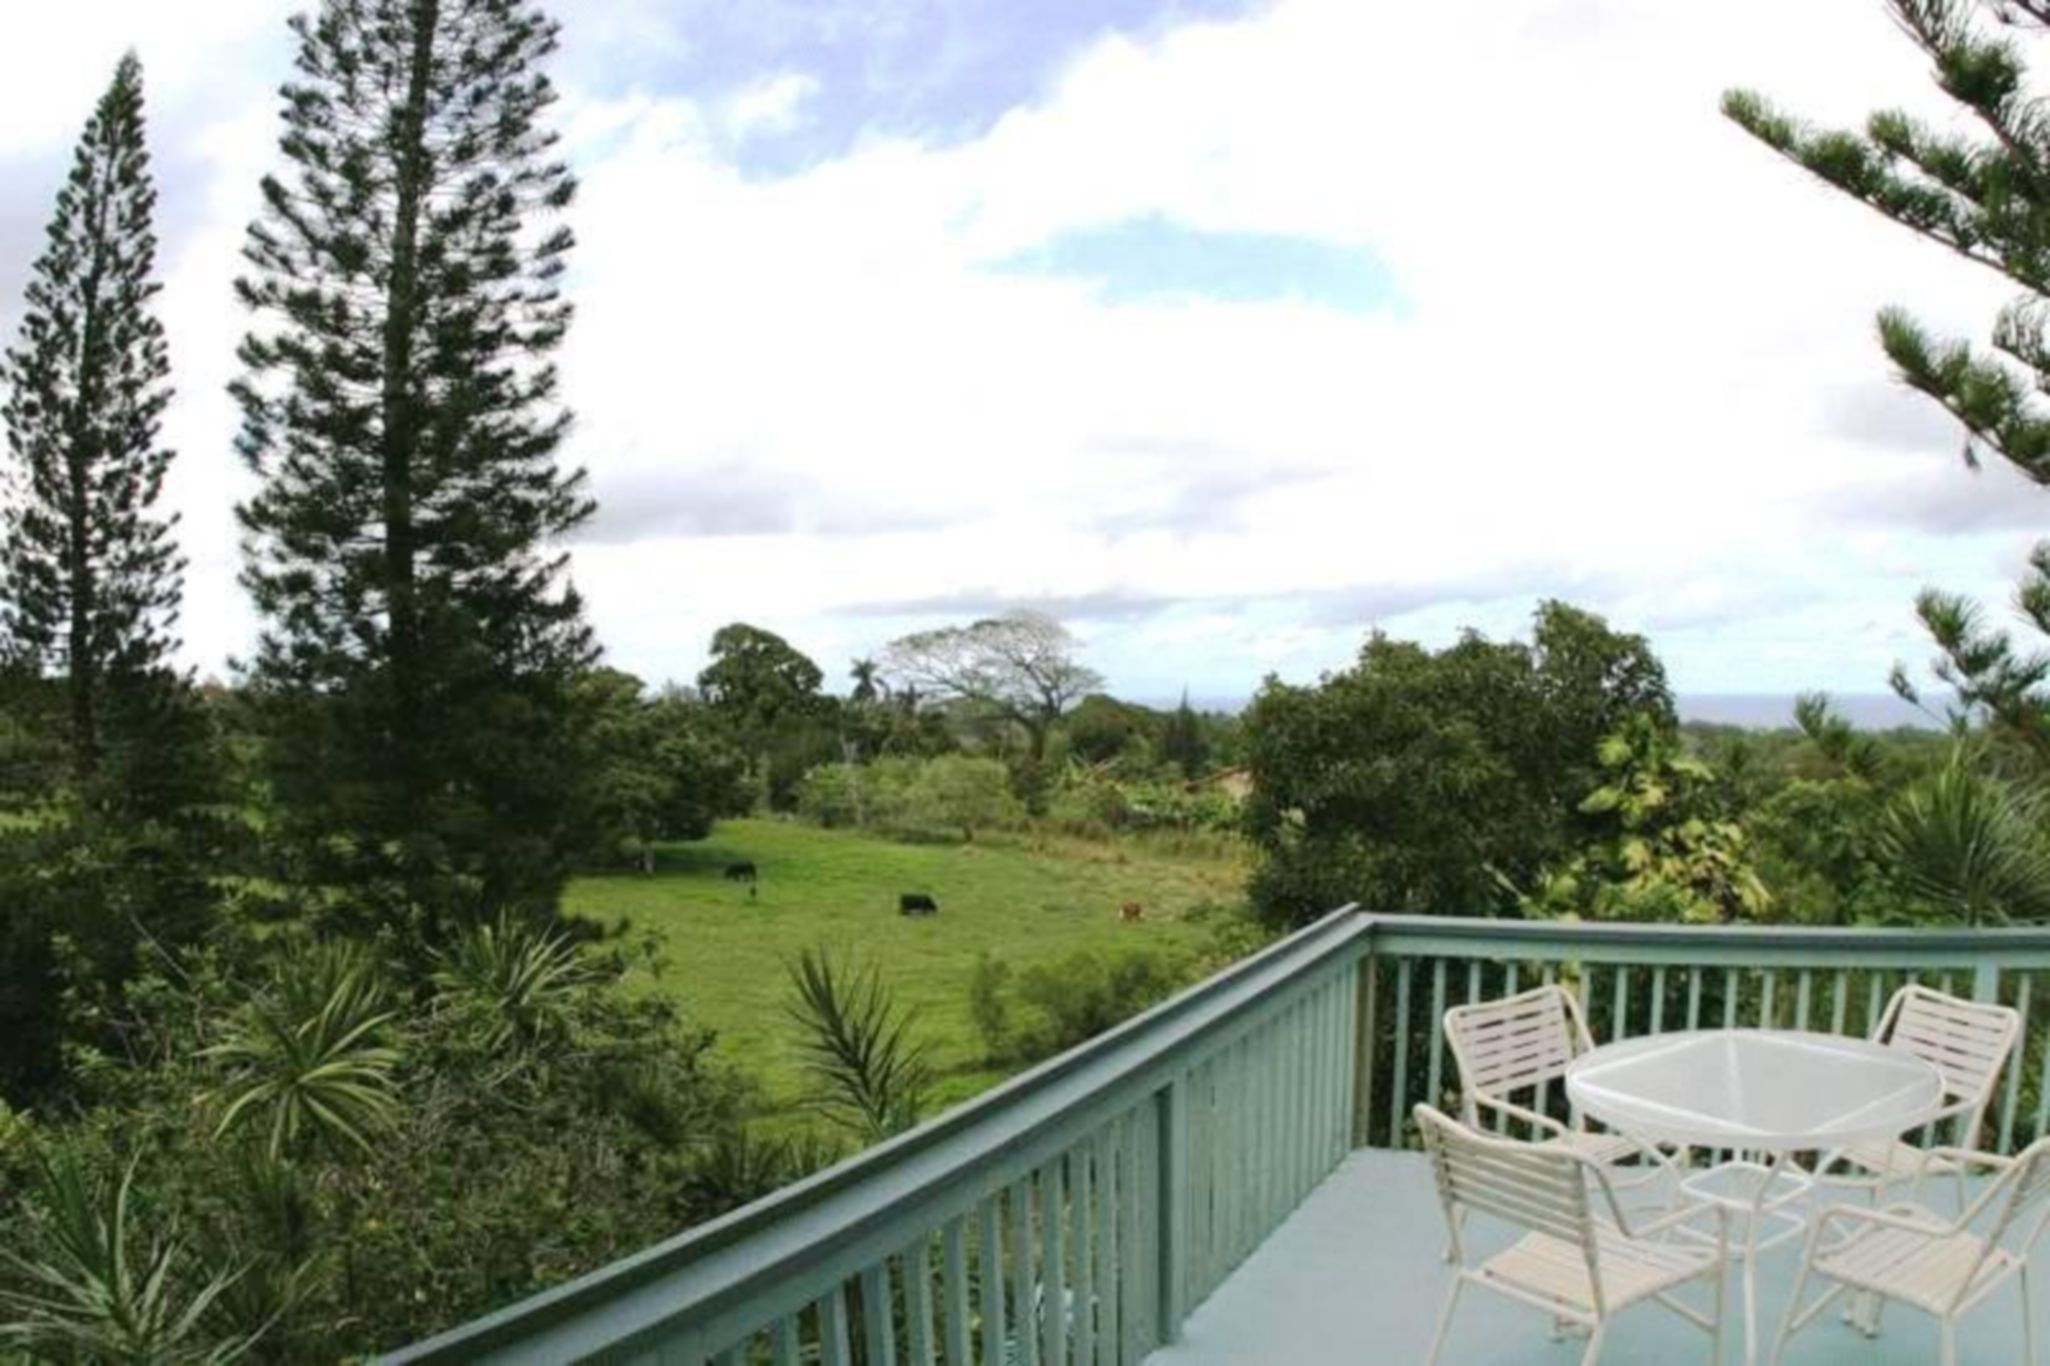 kohala country adventures guesthouse is the perfect base from